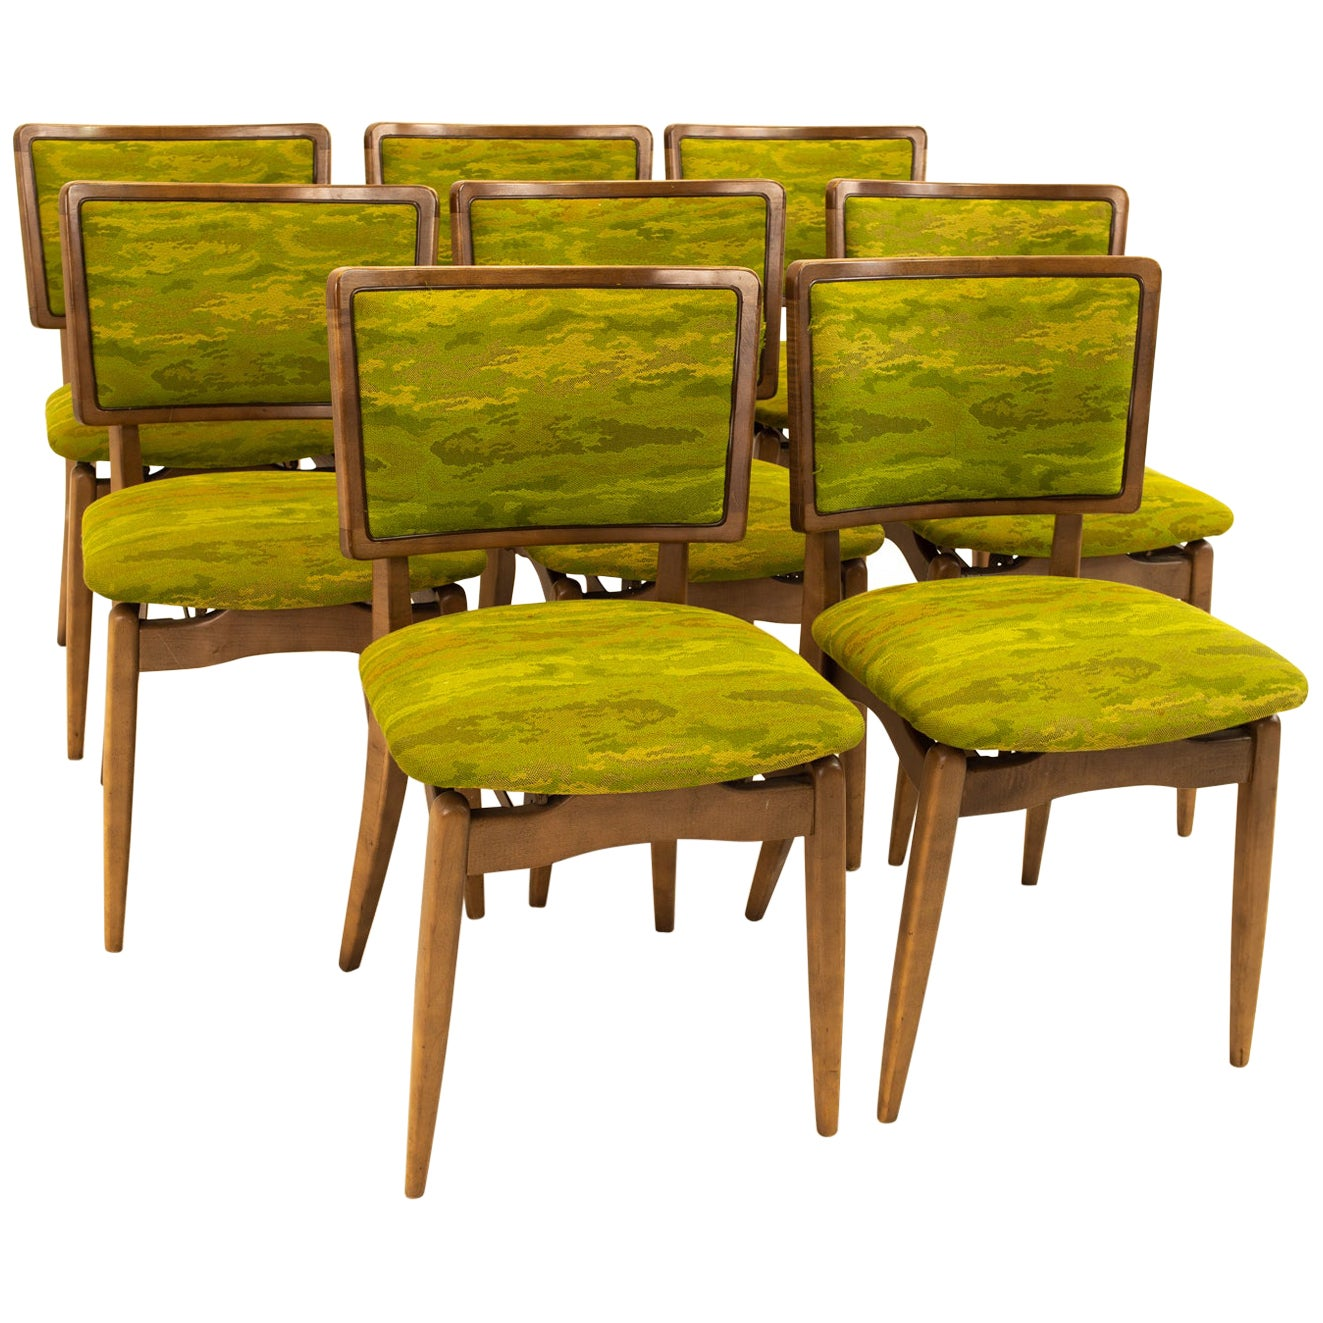 Stakmore Mid Century Folding Dining Chairs - Set of 8